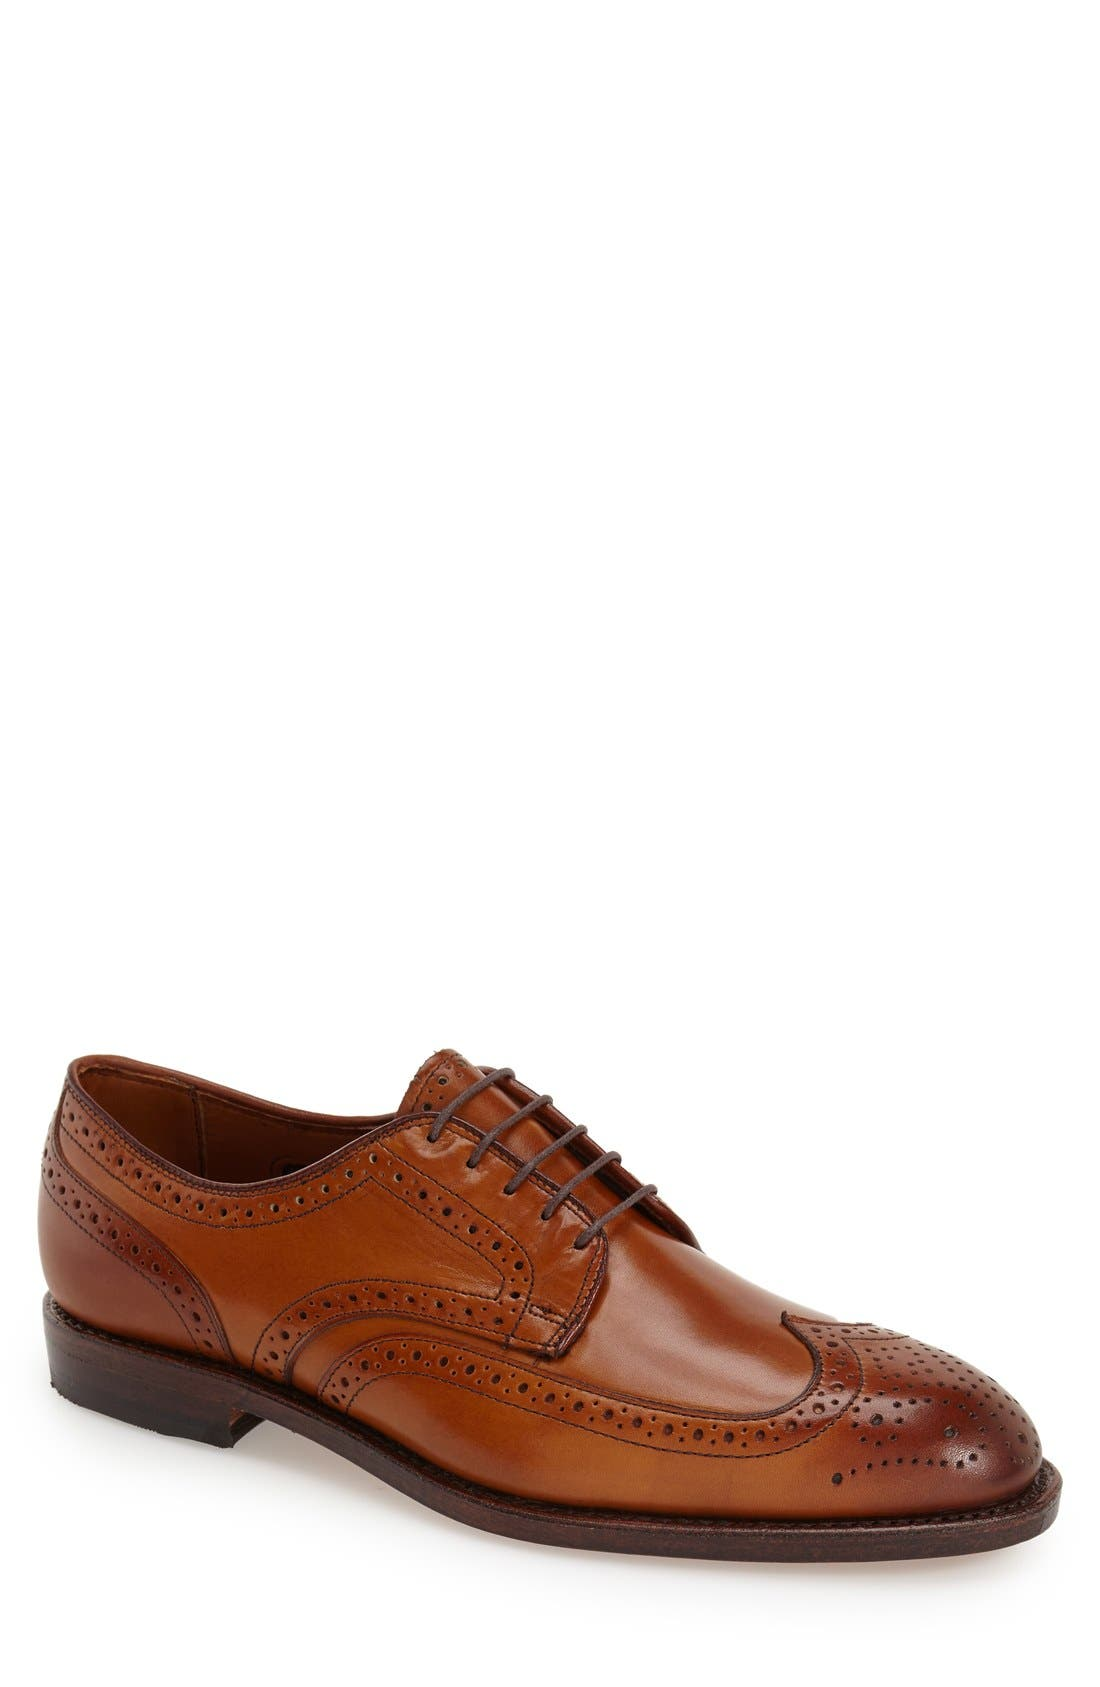 'Madison Park' Wingtip,                             Main thumbnail 1, color,                             WALNUT LEATHER